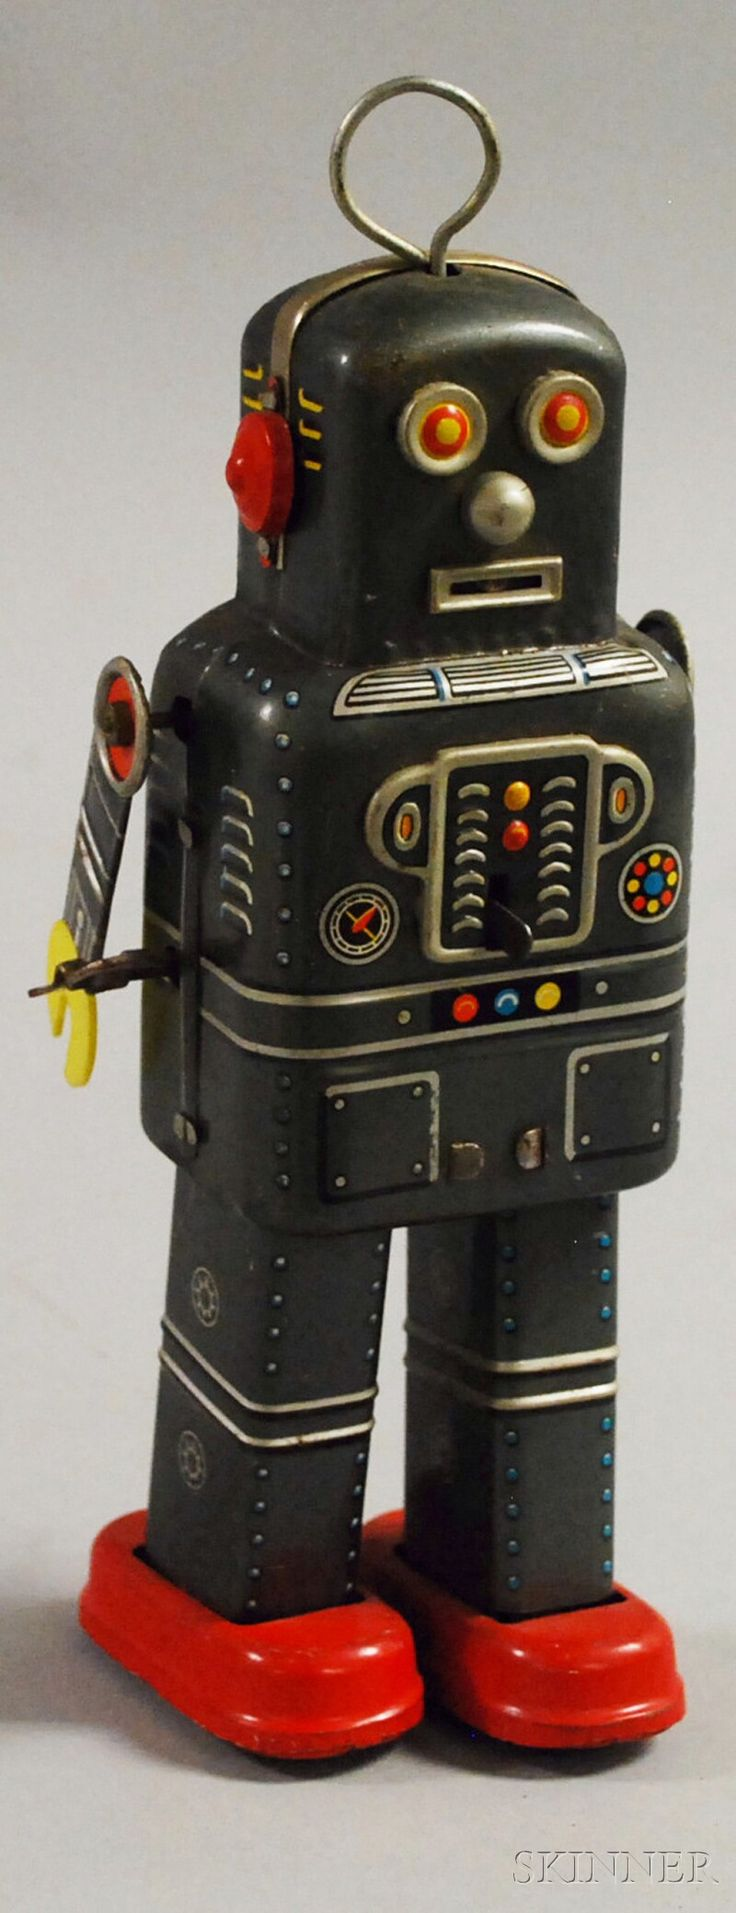 Lot 221  SY Wind-up Lithographed Tin Robot, Japan, ht. 9 5/8 in.  Estimate $200-250